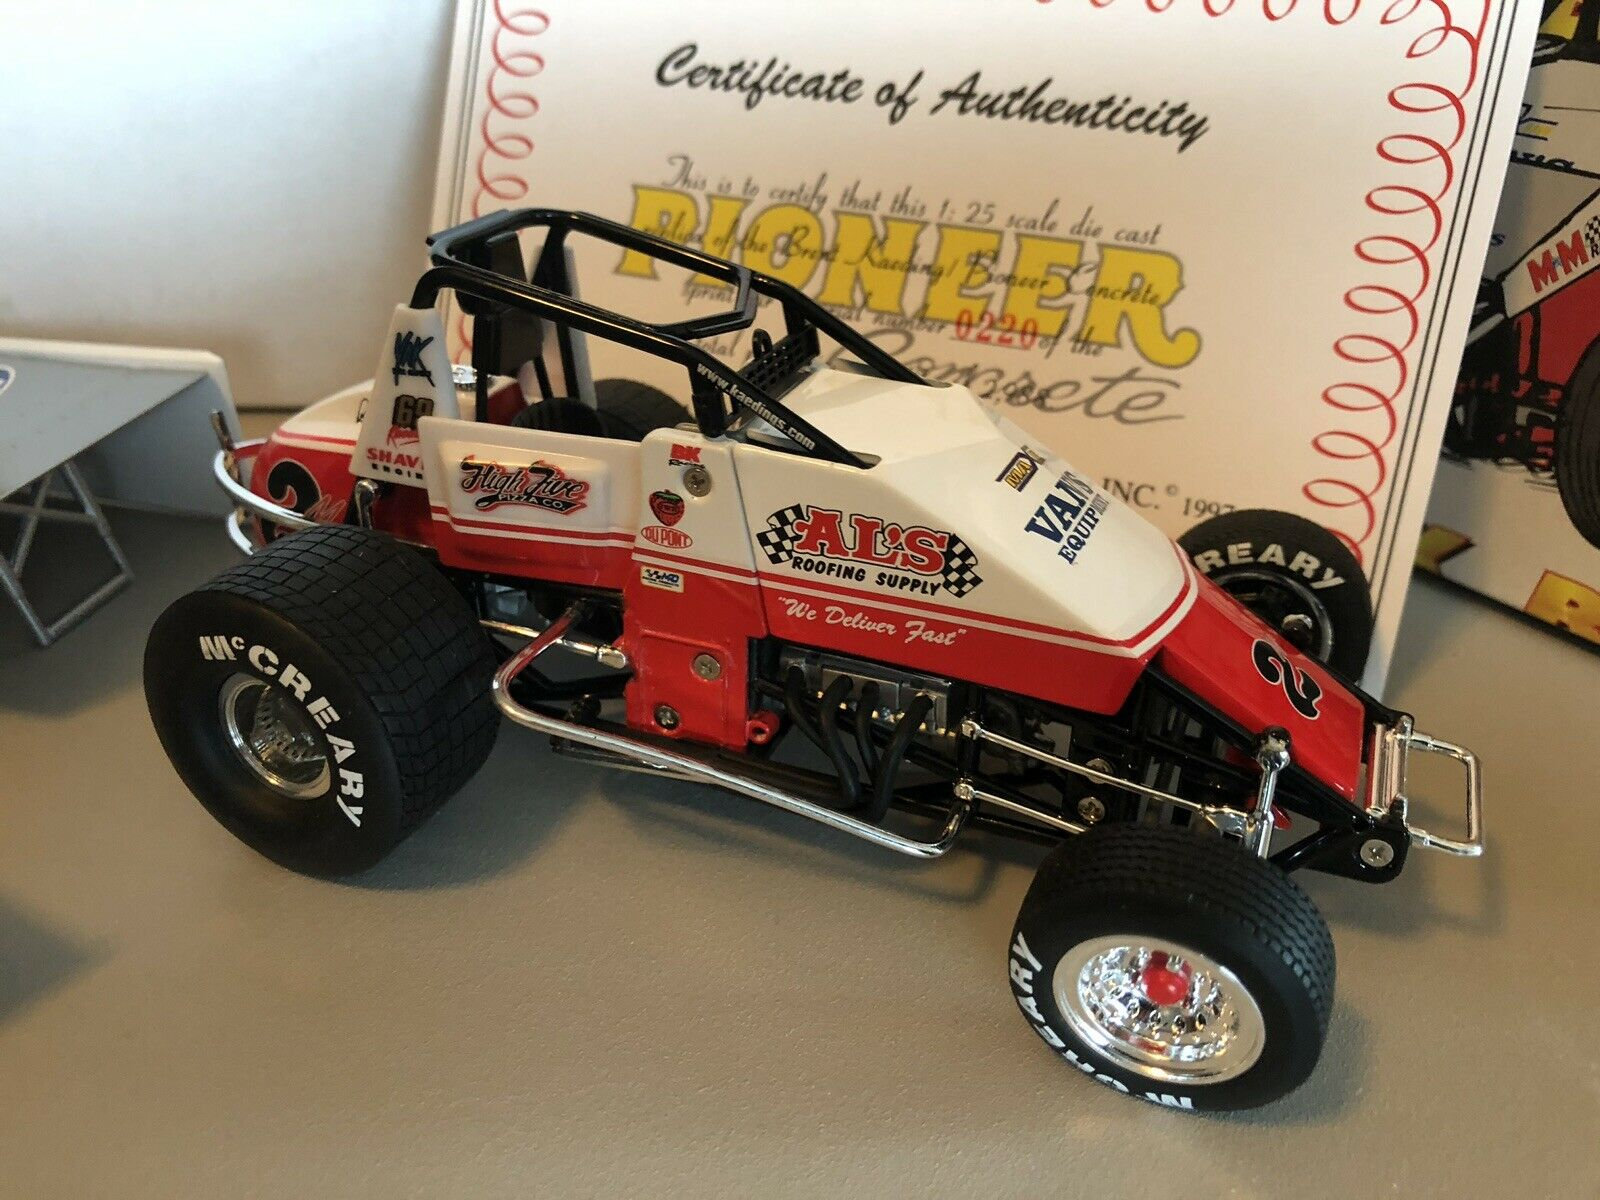 Gmp Brent Karding  2m 1 25 Scale Pioneer Concrete Sprint voiture